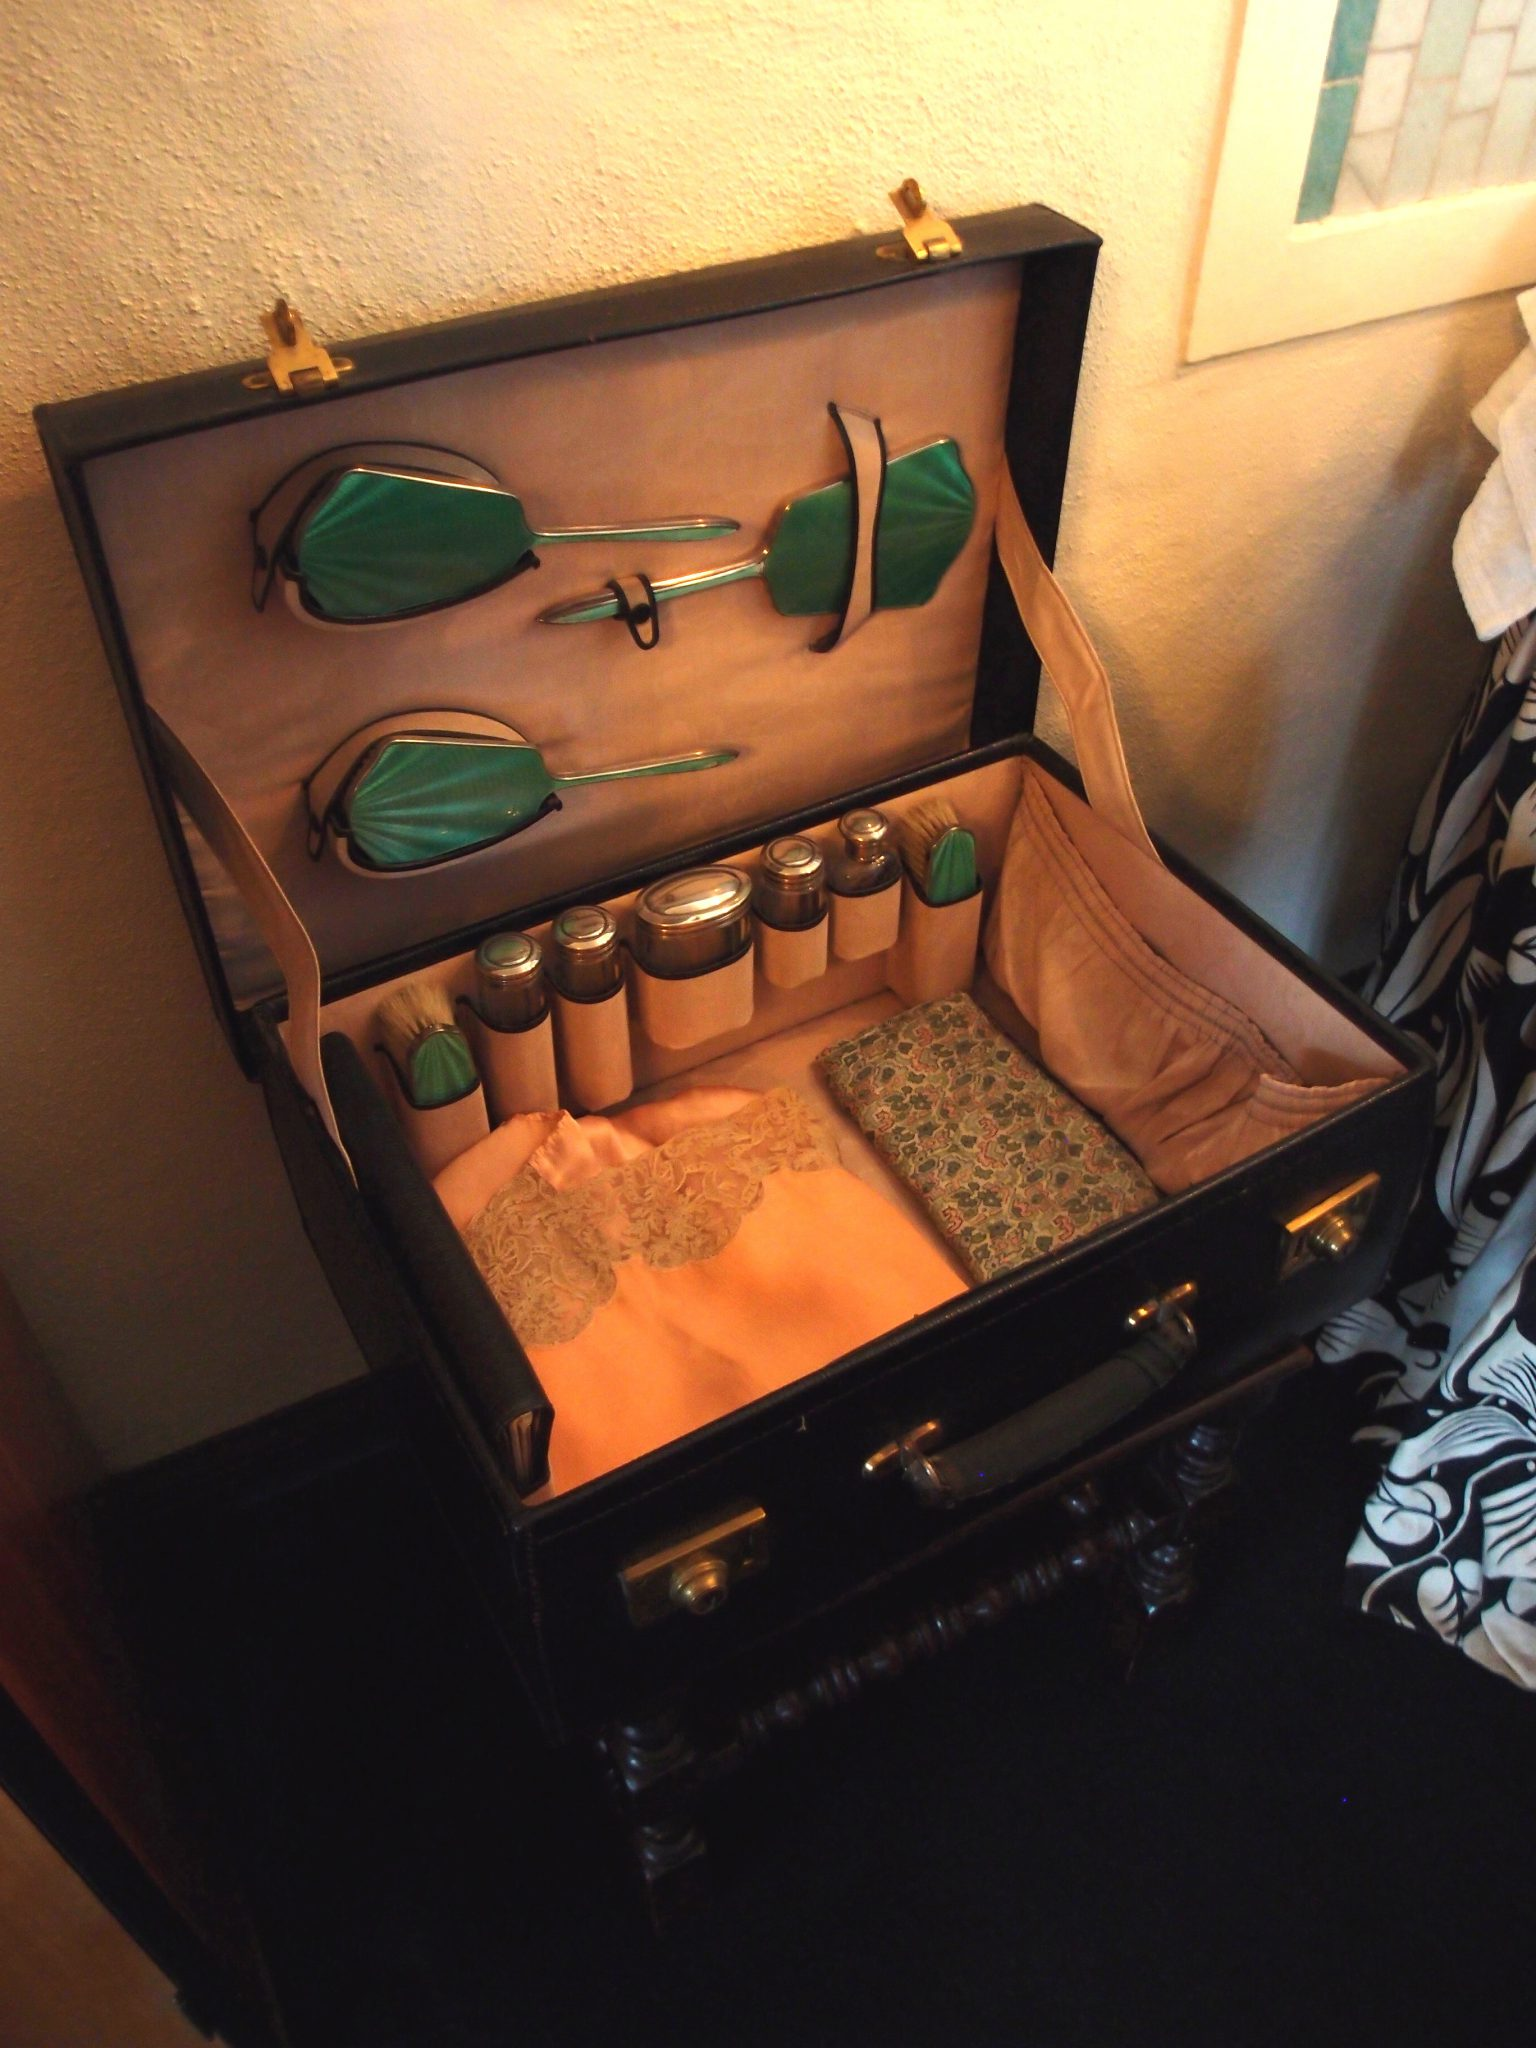 In Dorothy's Bedroom: a traveling-case, typical of the 1930s.